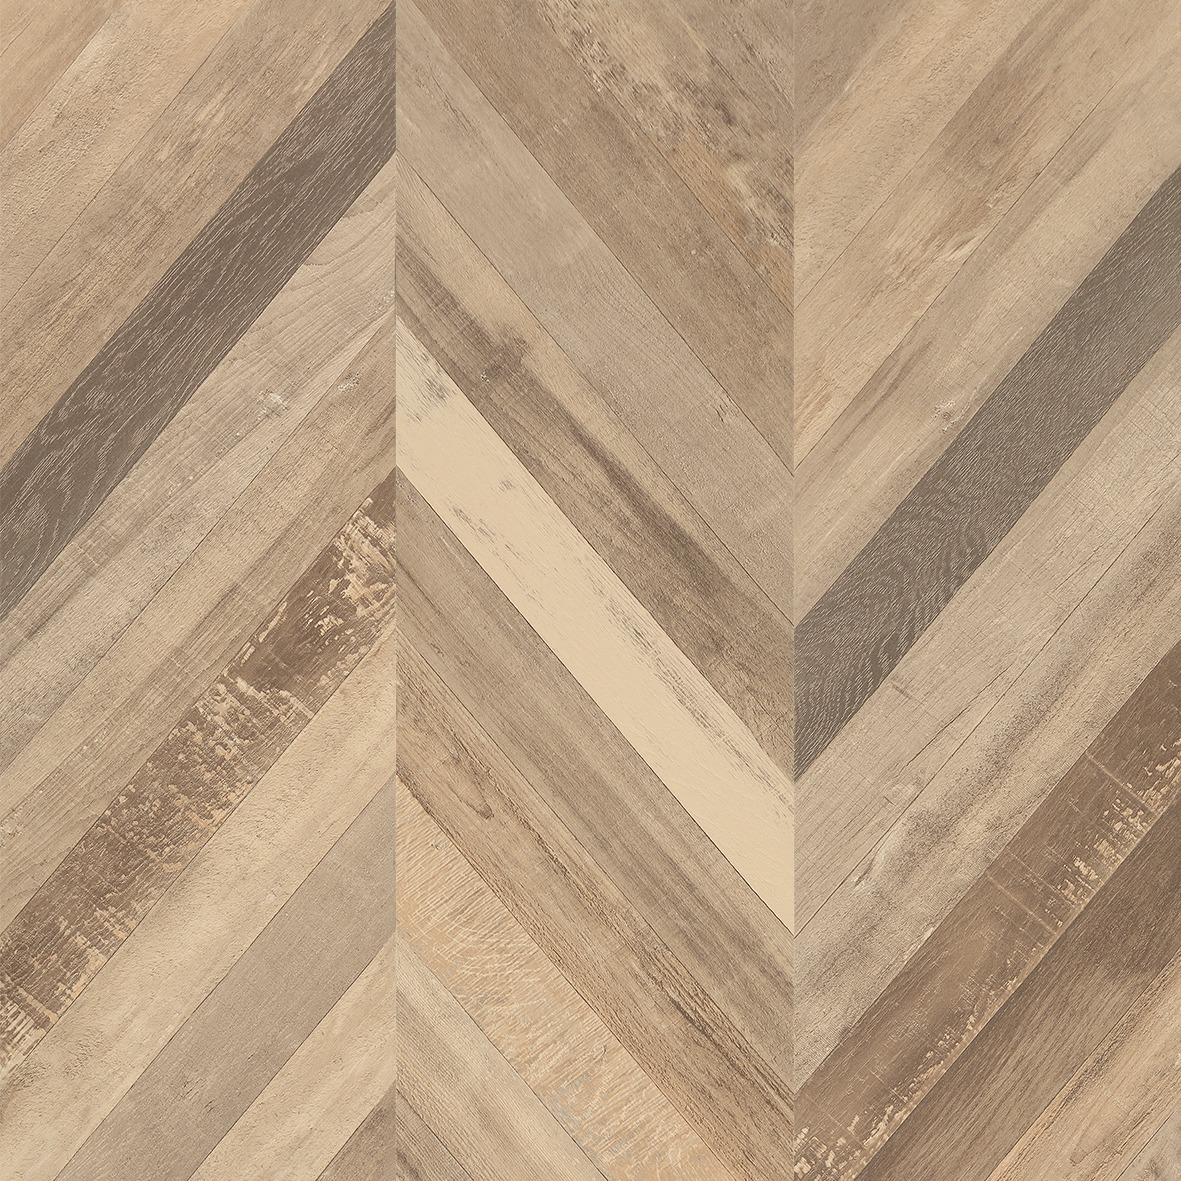 Faus 8mm Masterpiece Chevron Cream Laminate Flooring